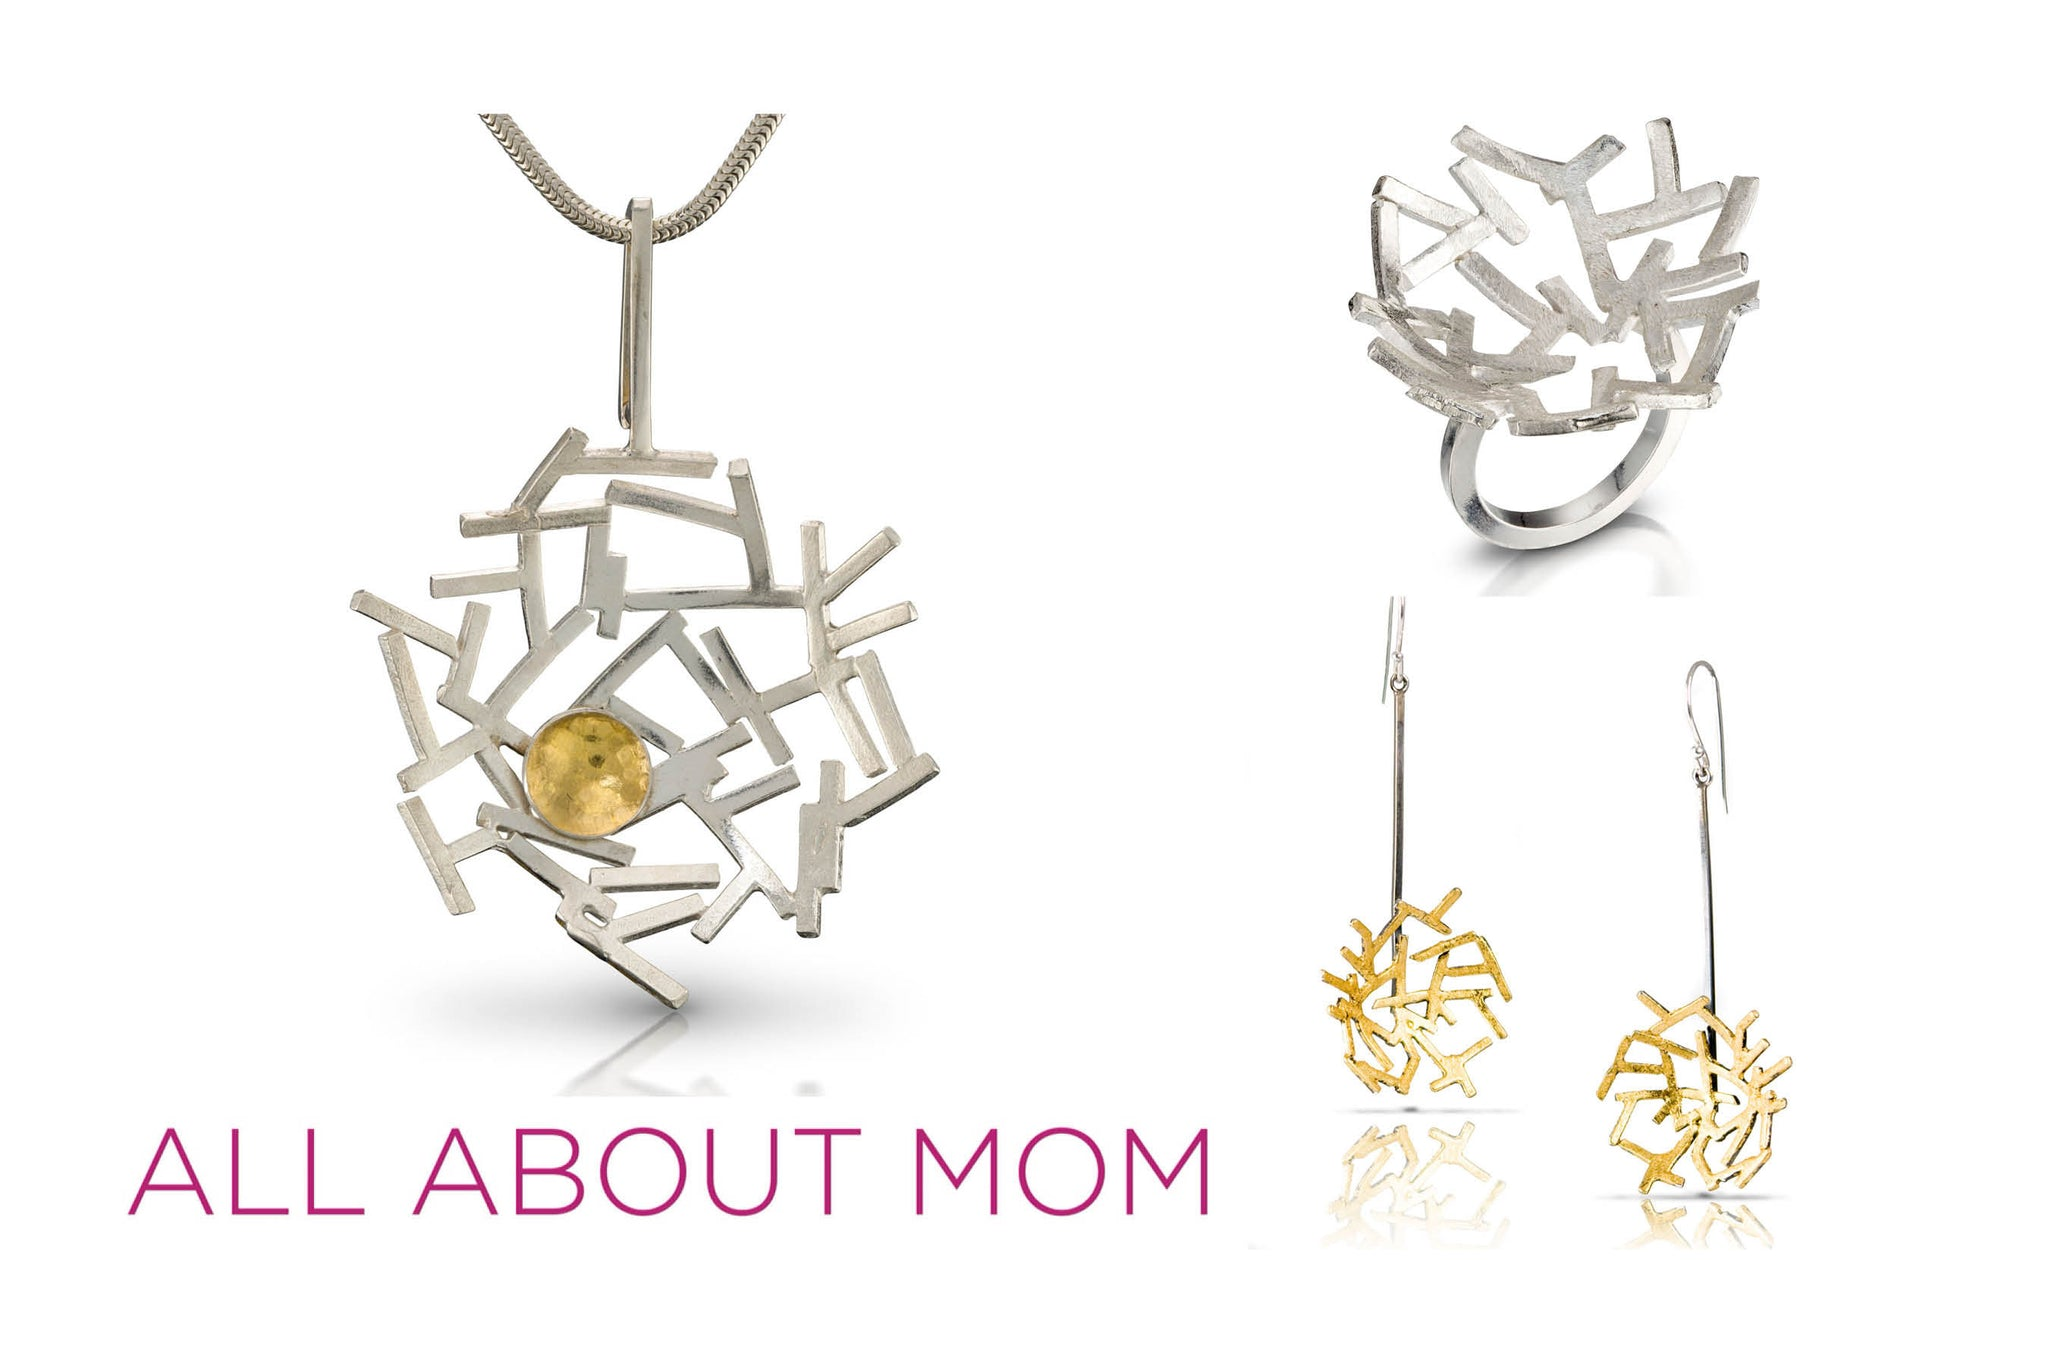 Most-loved gifts for Mom from Artist Lori Gottlieb!